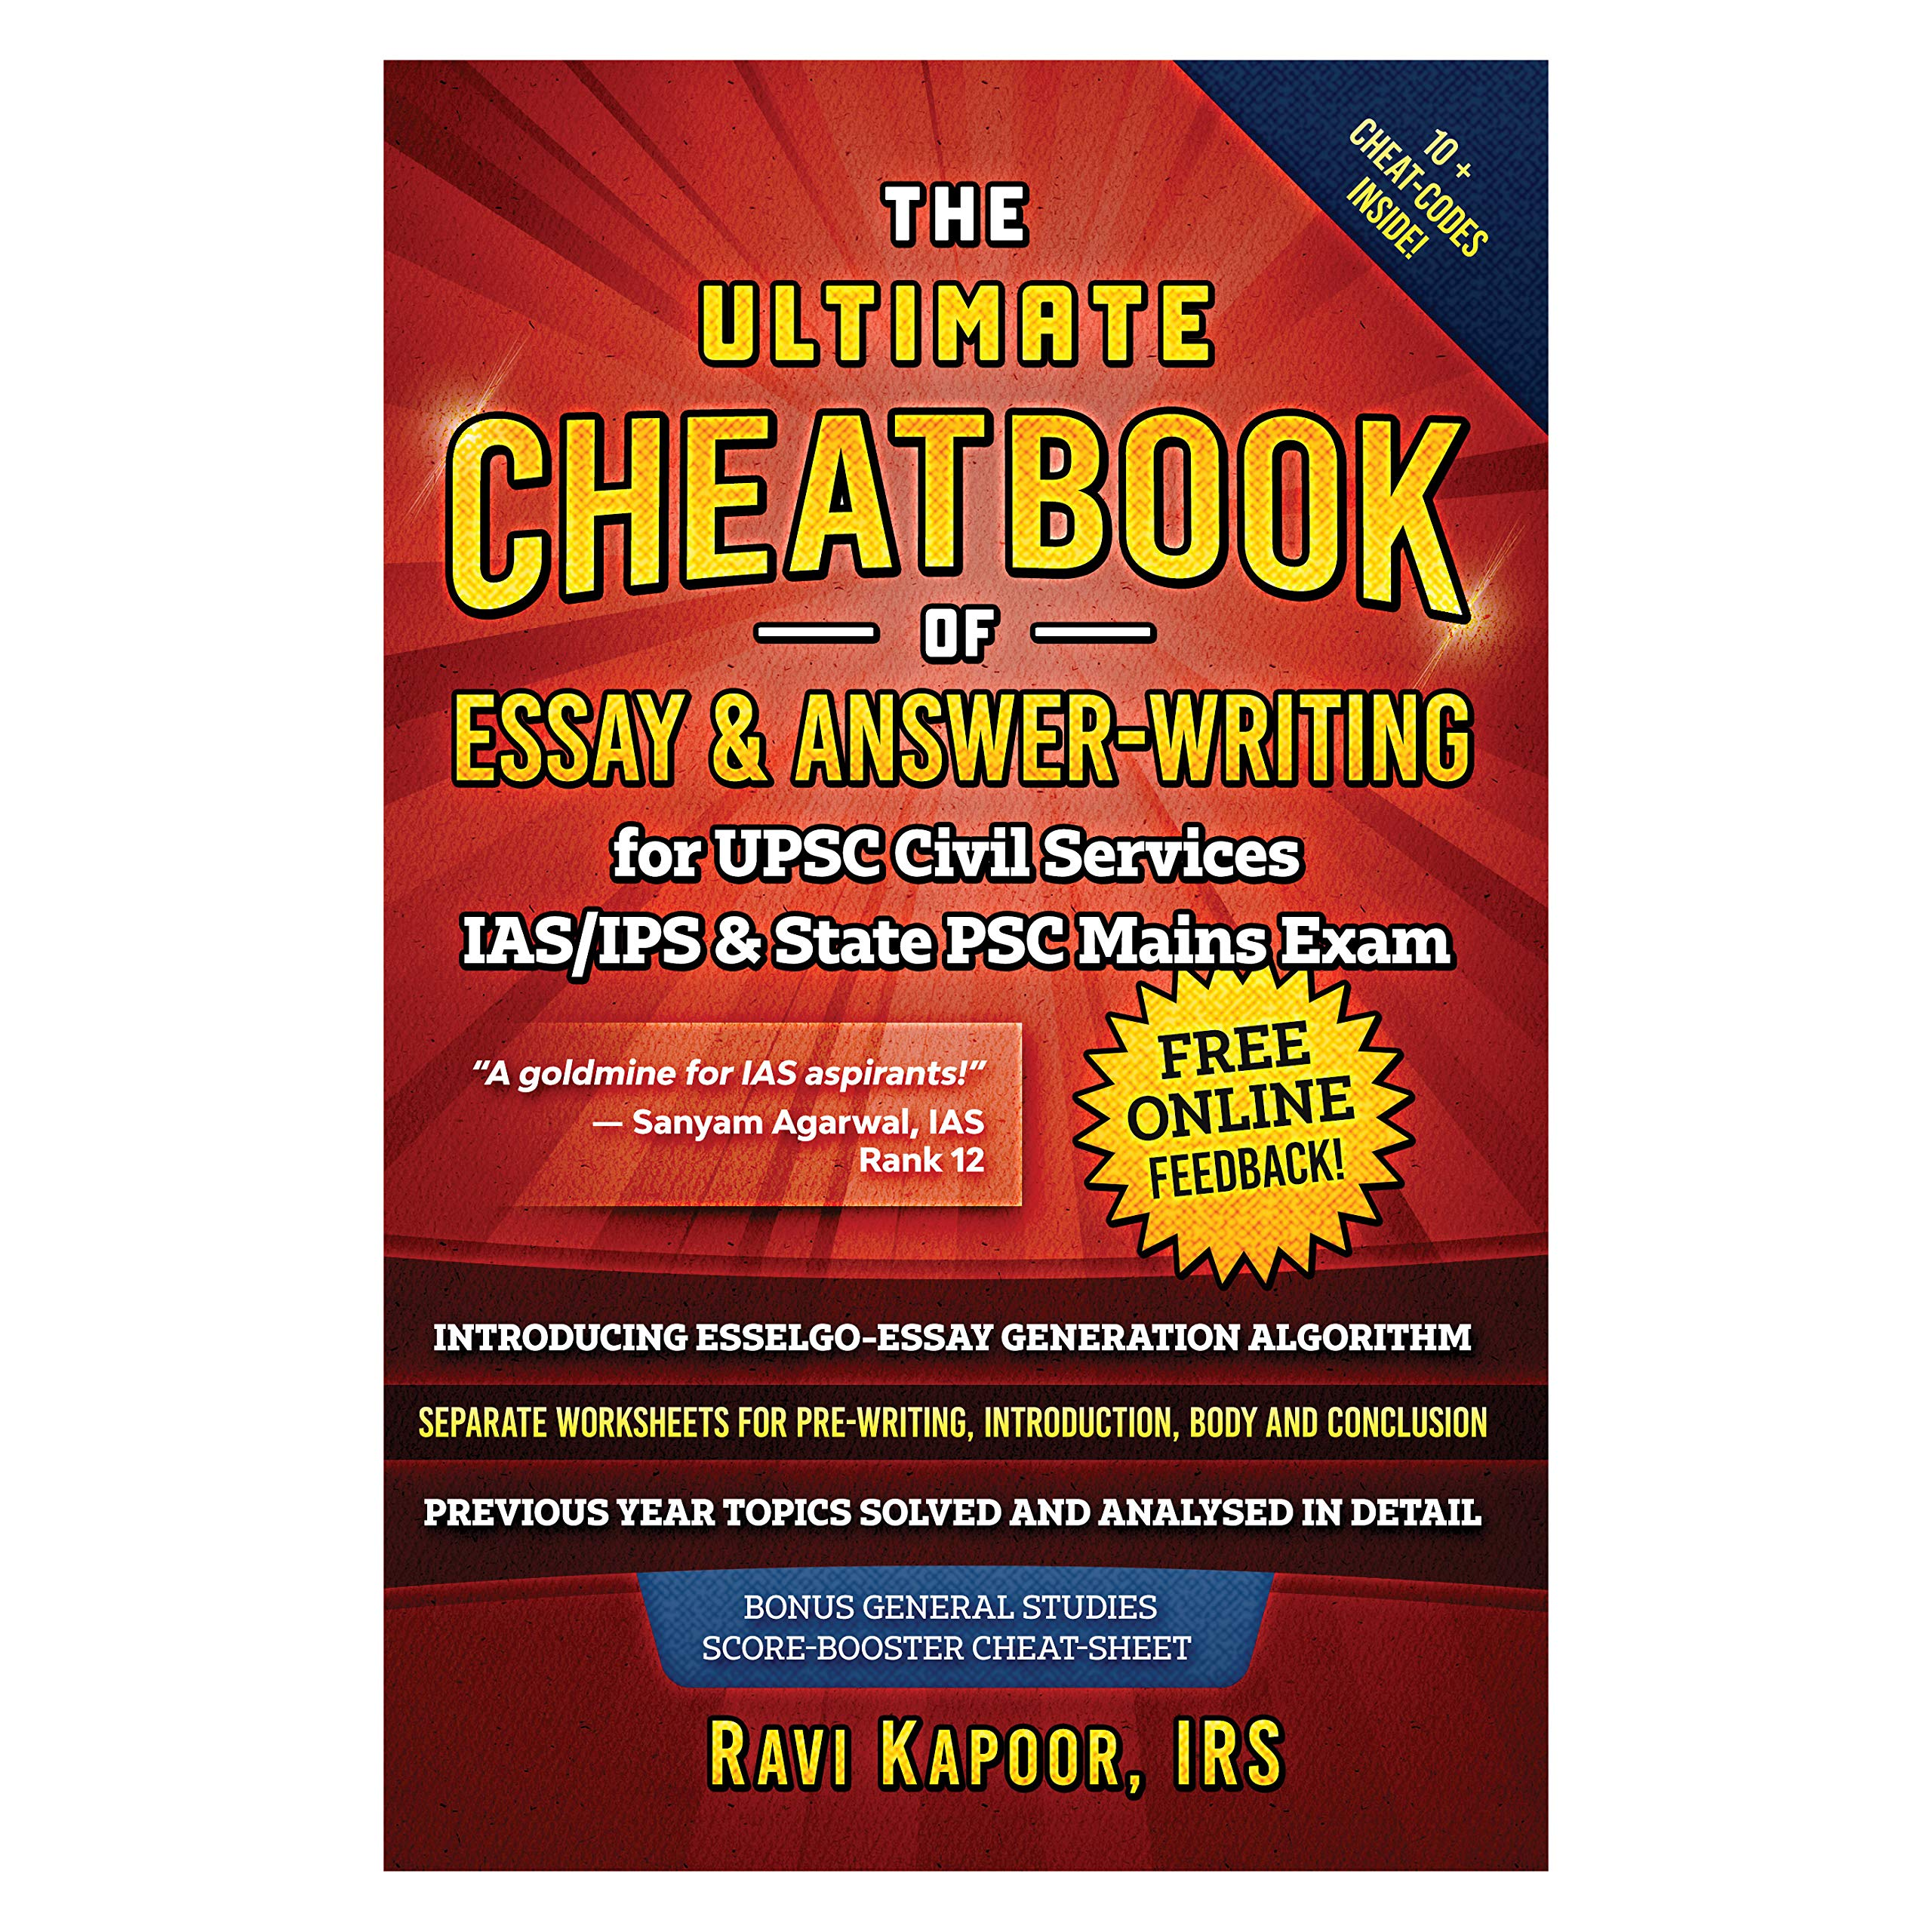 IRS Ravi Kapoor : UPSC Civil Service IAS-IPS, IES and State PSC Main Exam Preparation, CSE,CAPF,UPPSC Essay and Answer-Writing Cheatbook Free download,